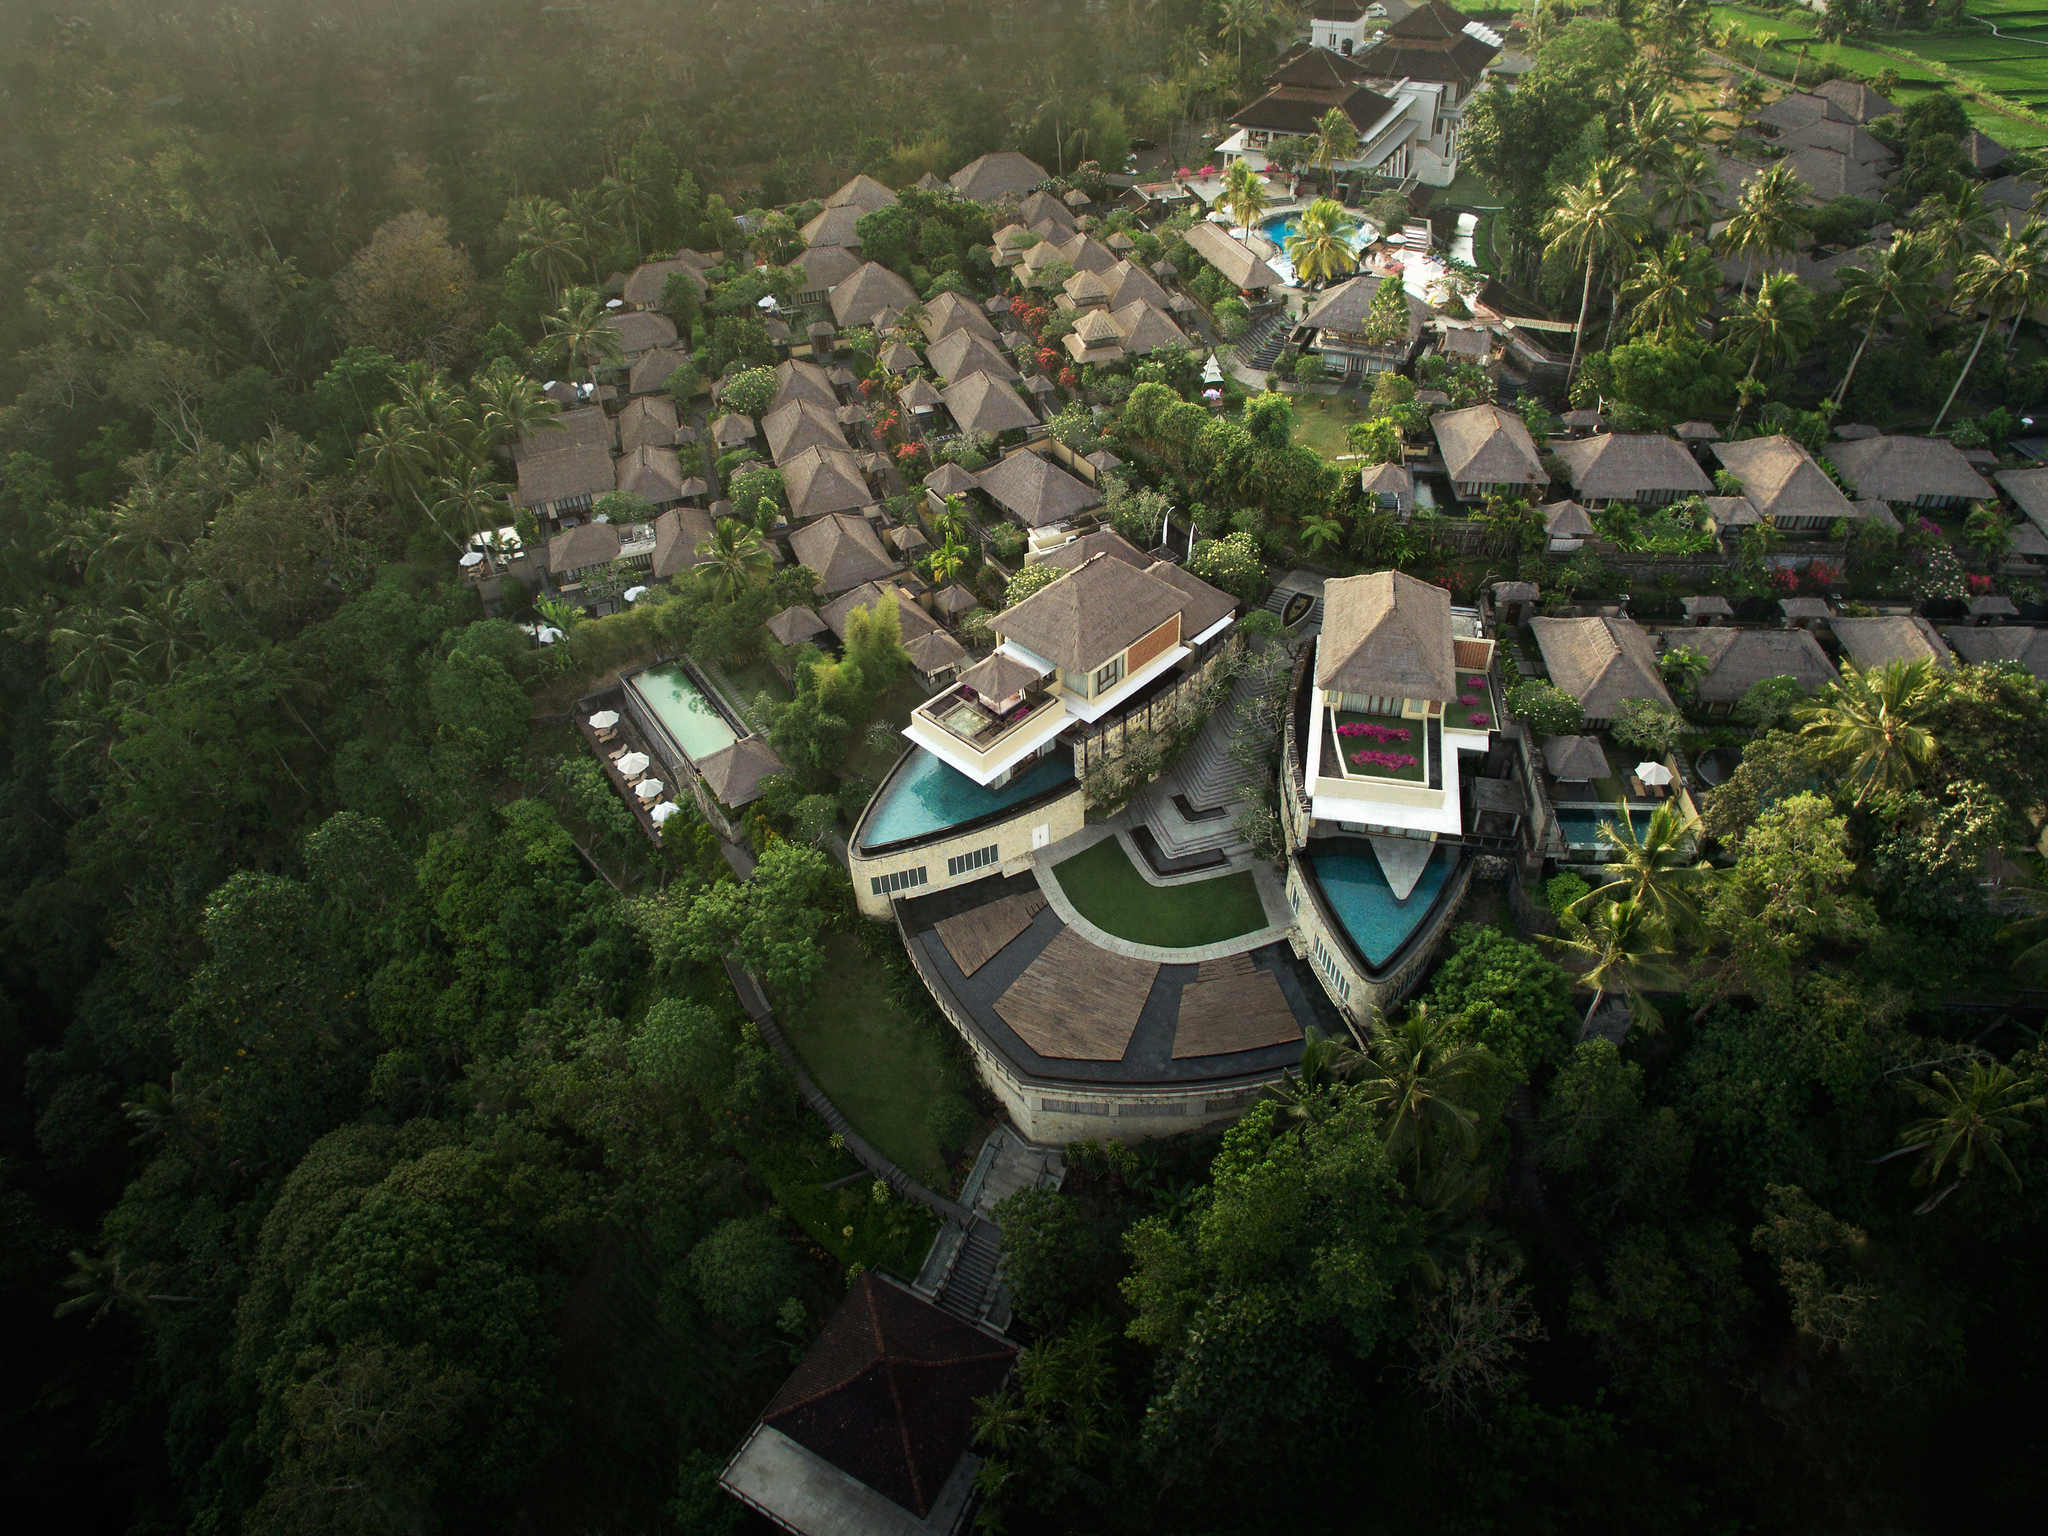 Hotel in ubud kamandalu ubud for Bali indonesia hotels 5 star